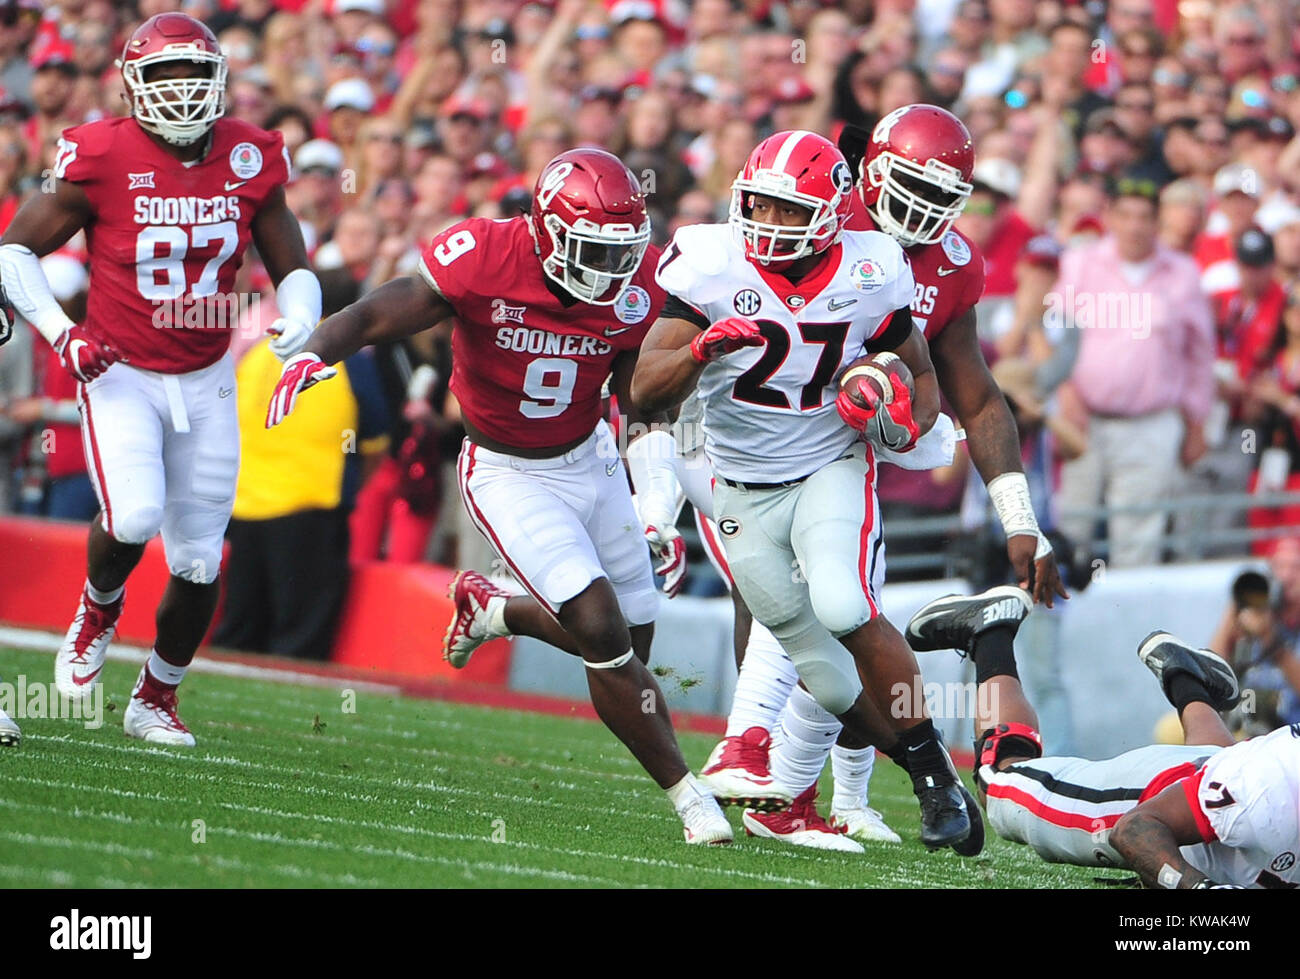 Pasadena, California, USA. 01st Jan, 2018. Georgia Bulldogs running back Nick Chubb #27 during the 2018 Rose Bowl Stock Photo